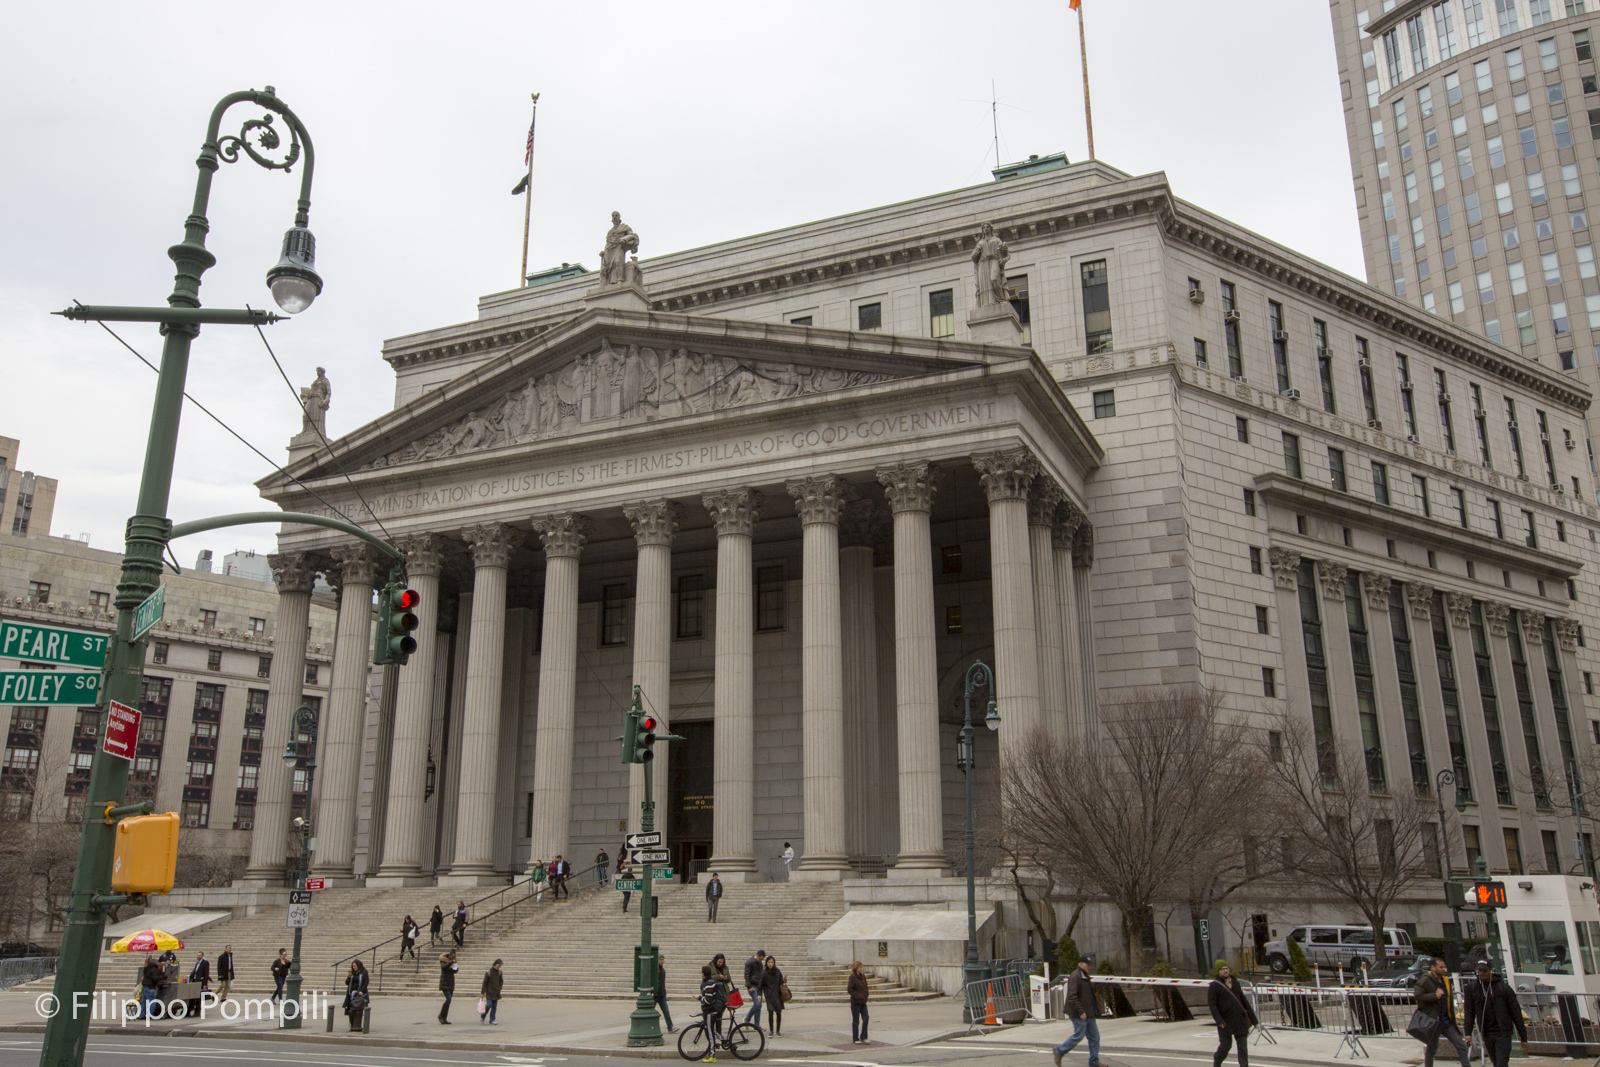 New York State Supreme Court (New York County Courthouse) - Foto Filippo Pompili